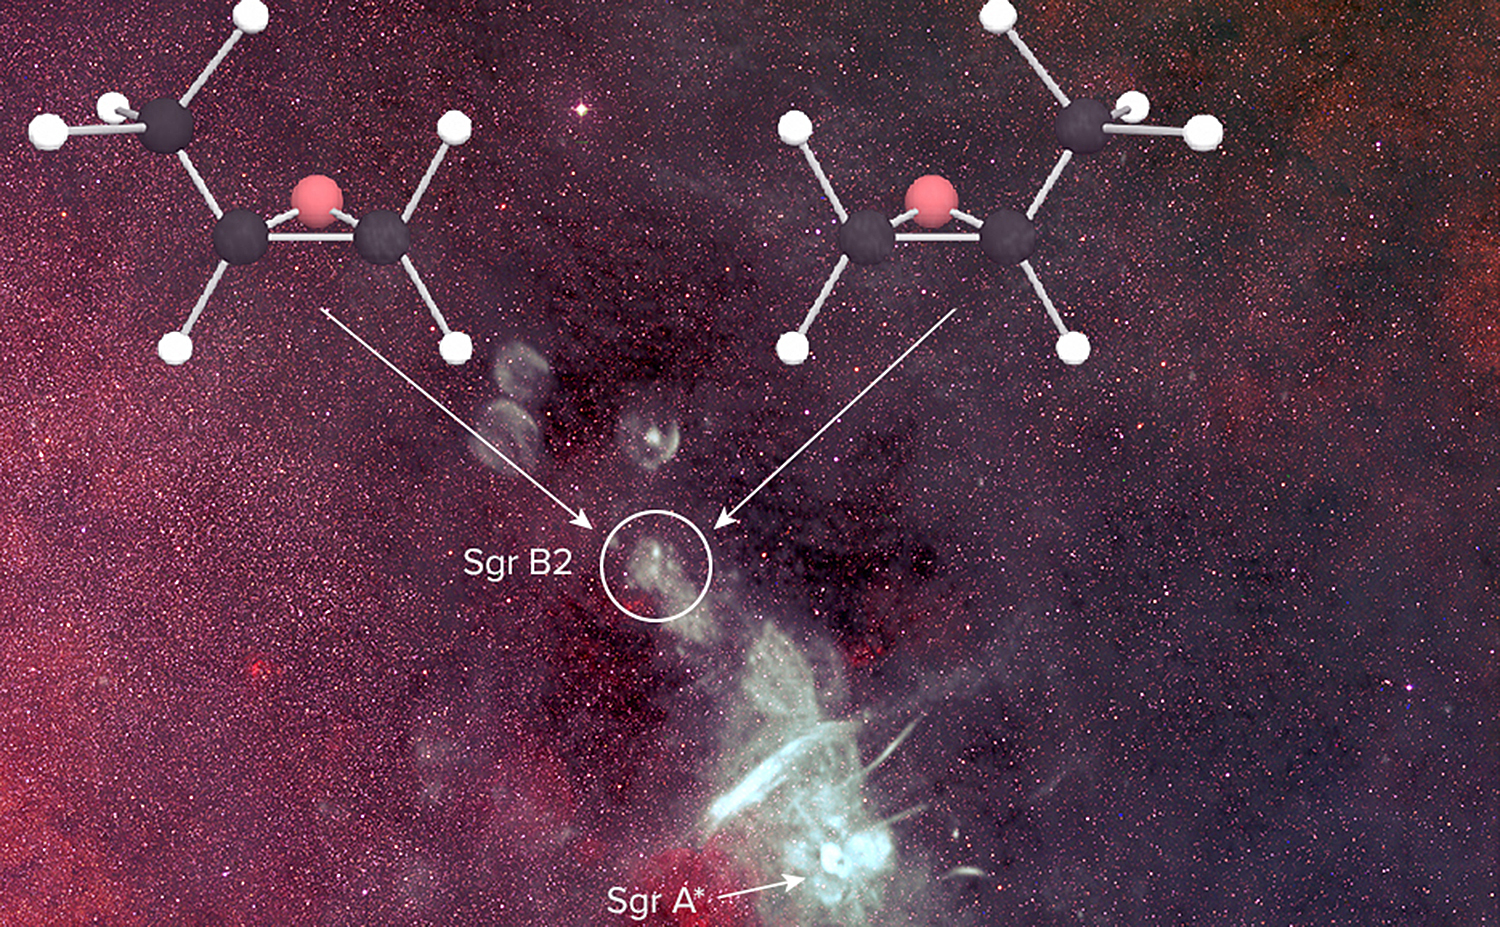 Interstellar space with overlay of the molucule structure of a 'handed' molecule, (propylene oxide) and its position in spce circled.